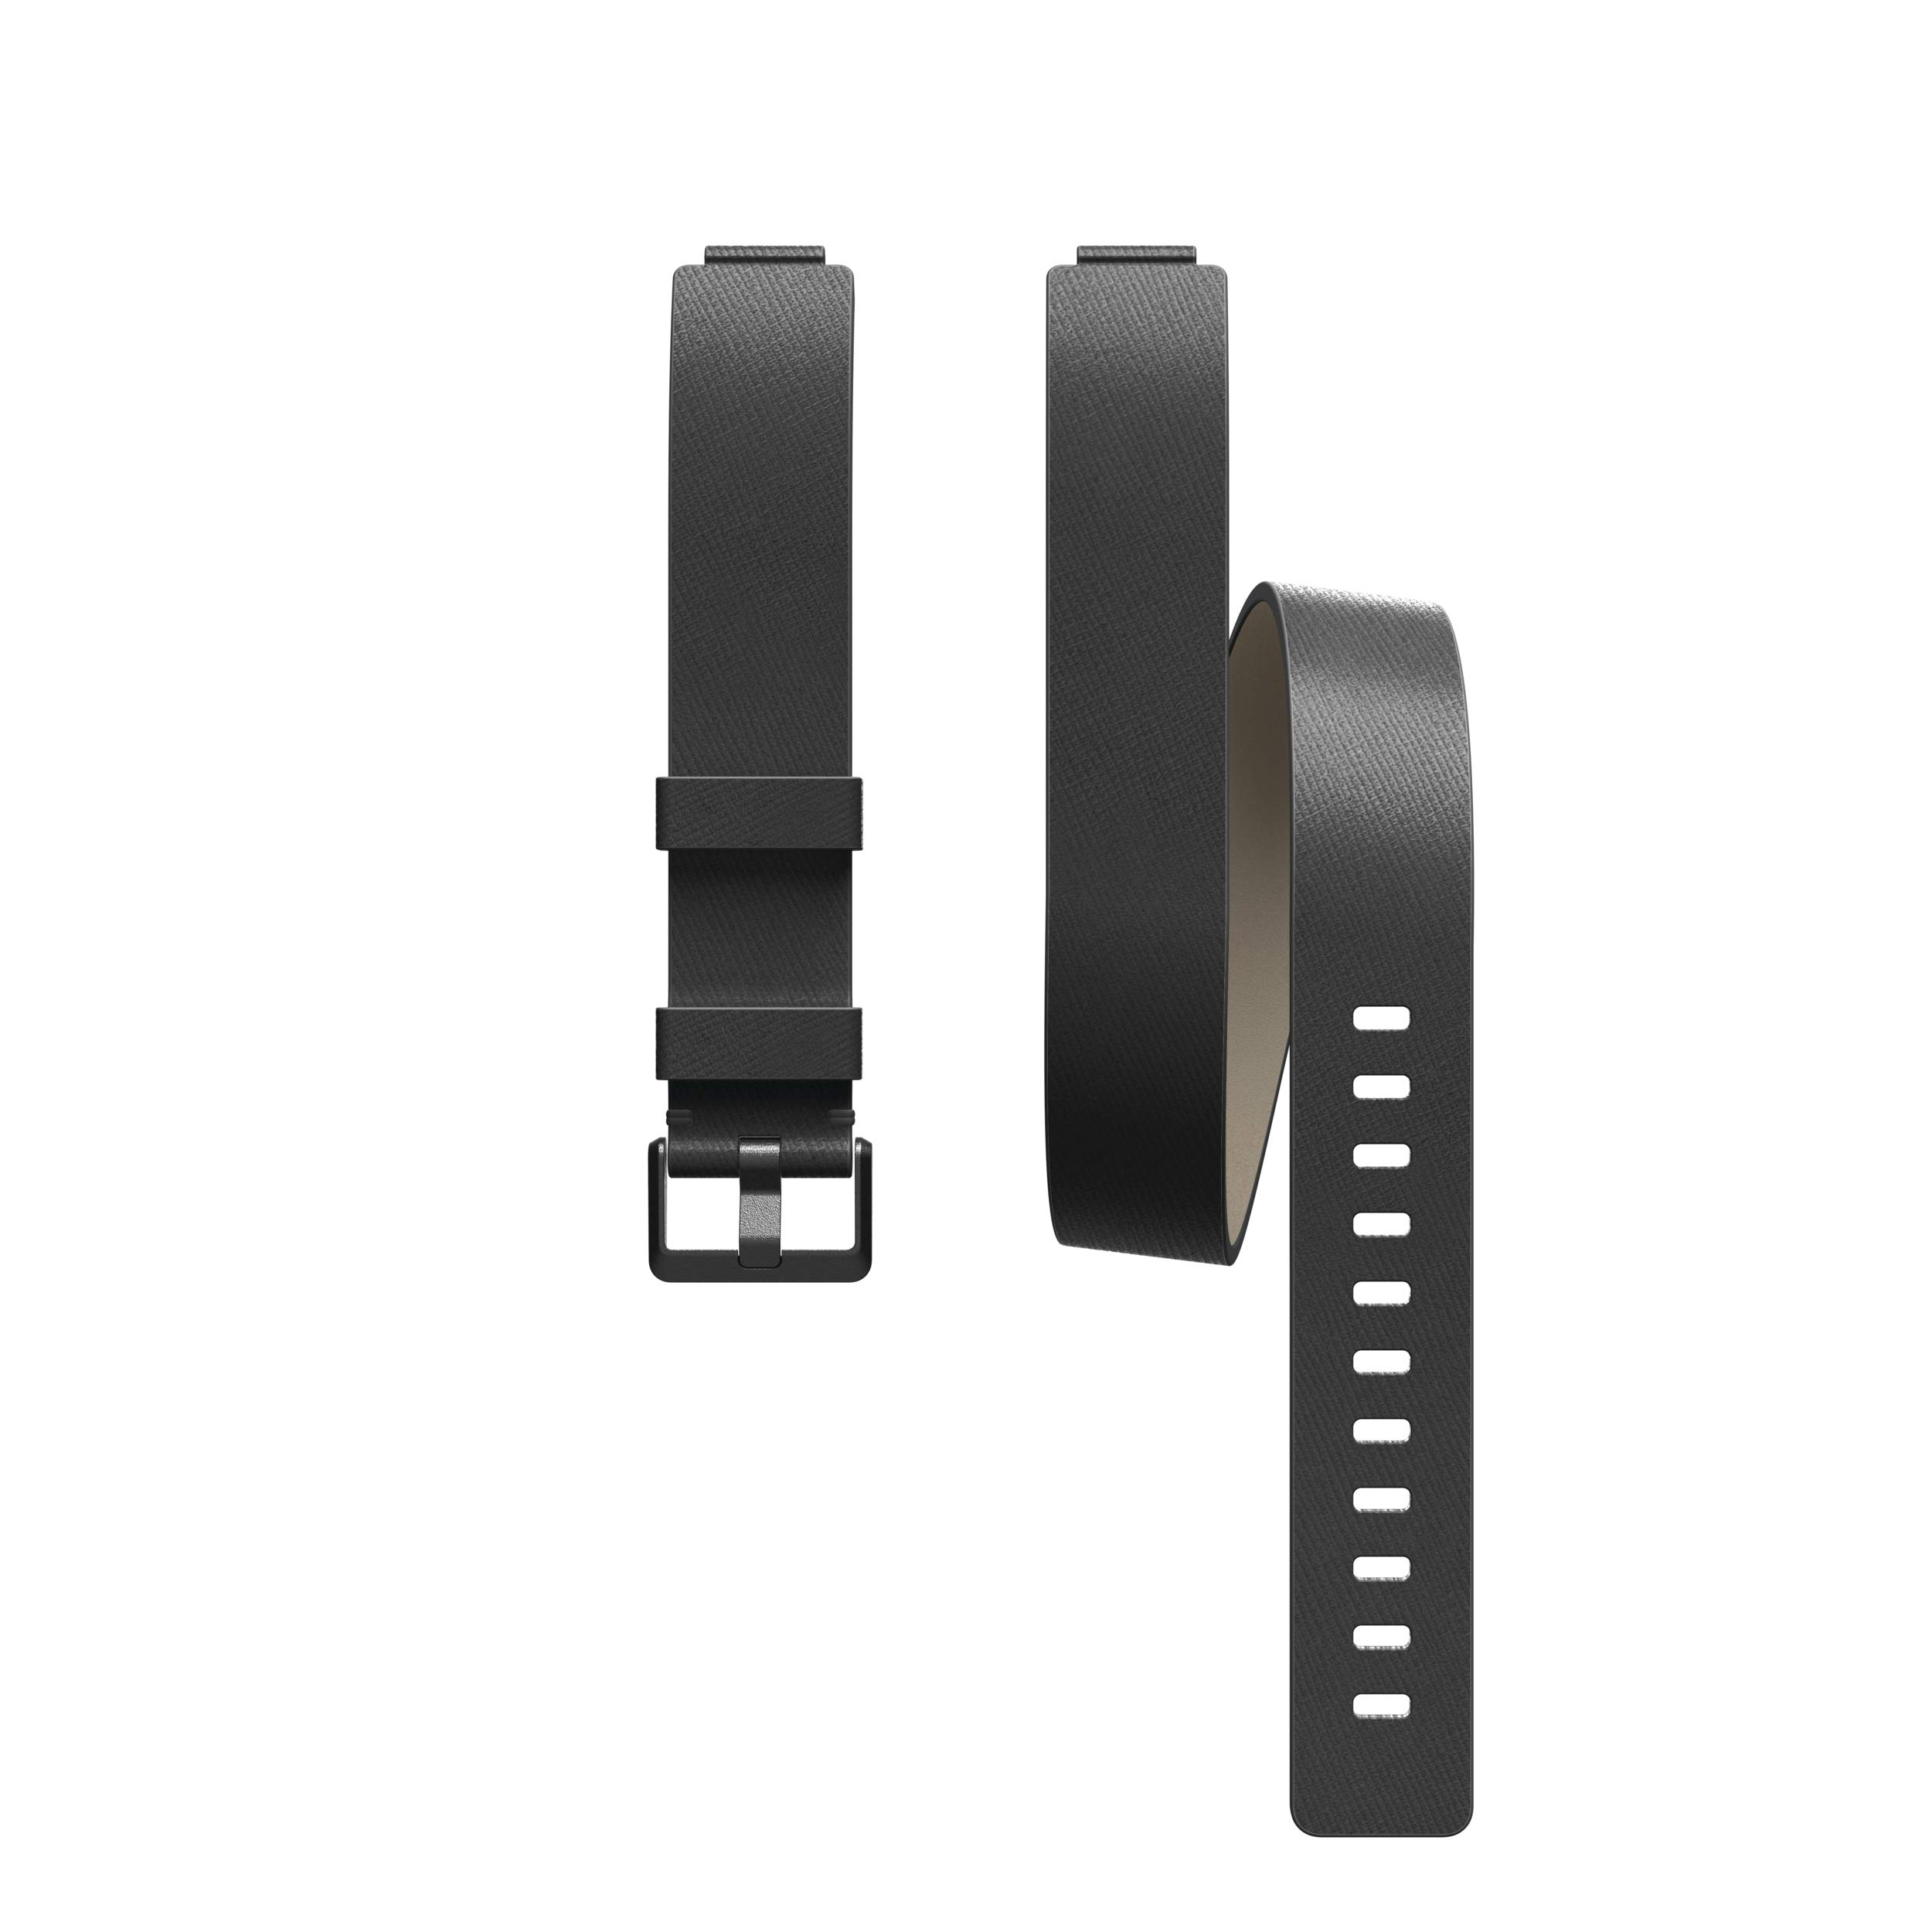 Fitbit Inspire HR & Inspire Accessory Band, Horween Leather Double Wrap, Official Fitbit Product, Black, One Size by Fitbit